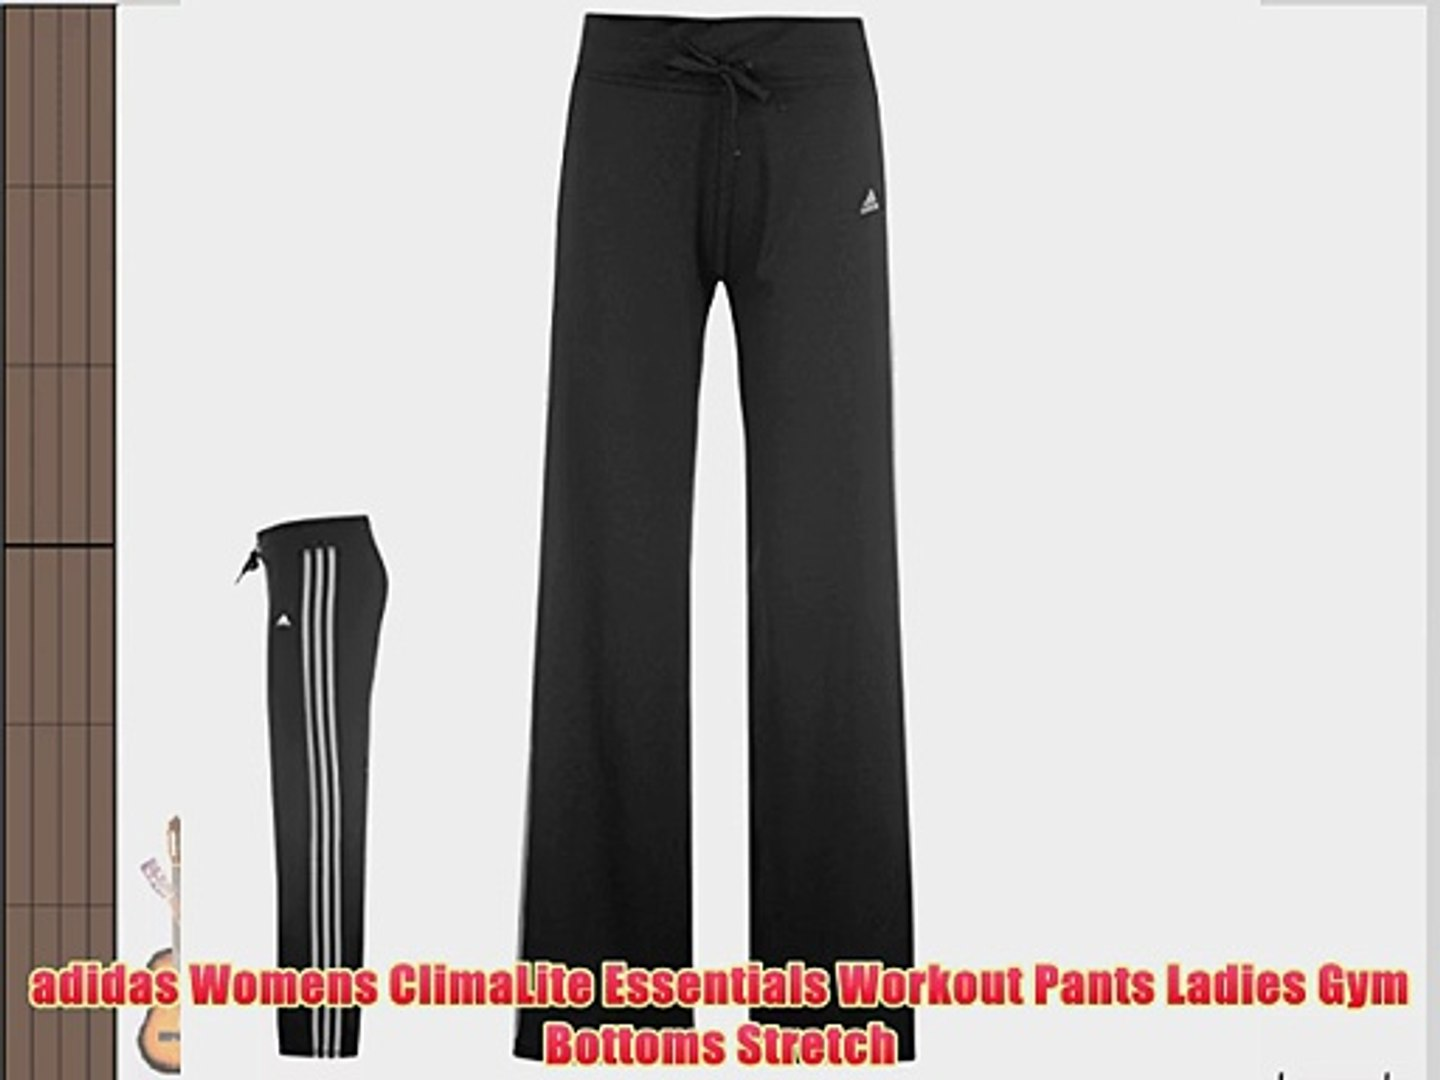 adidas Womens ClimaLite Essentials Workout Pants Ladies Gym Bottoms Stretch